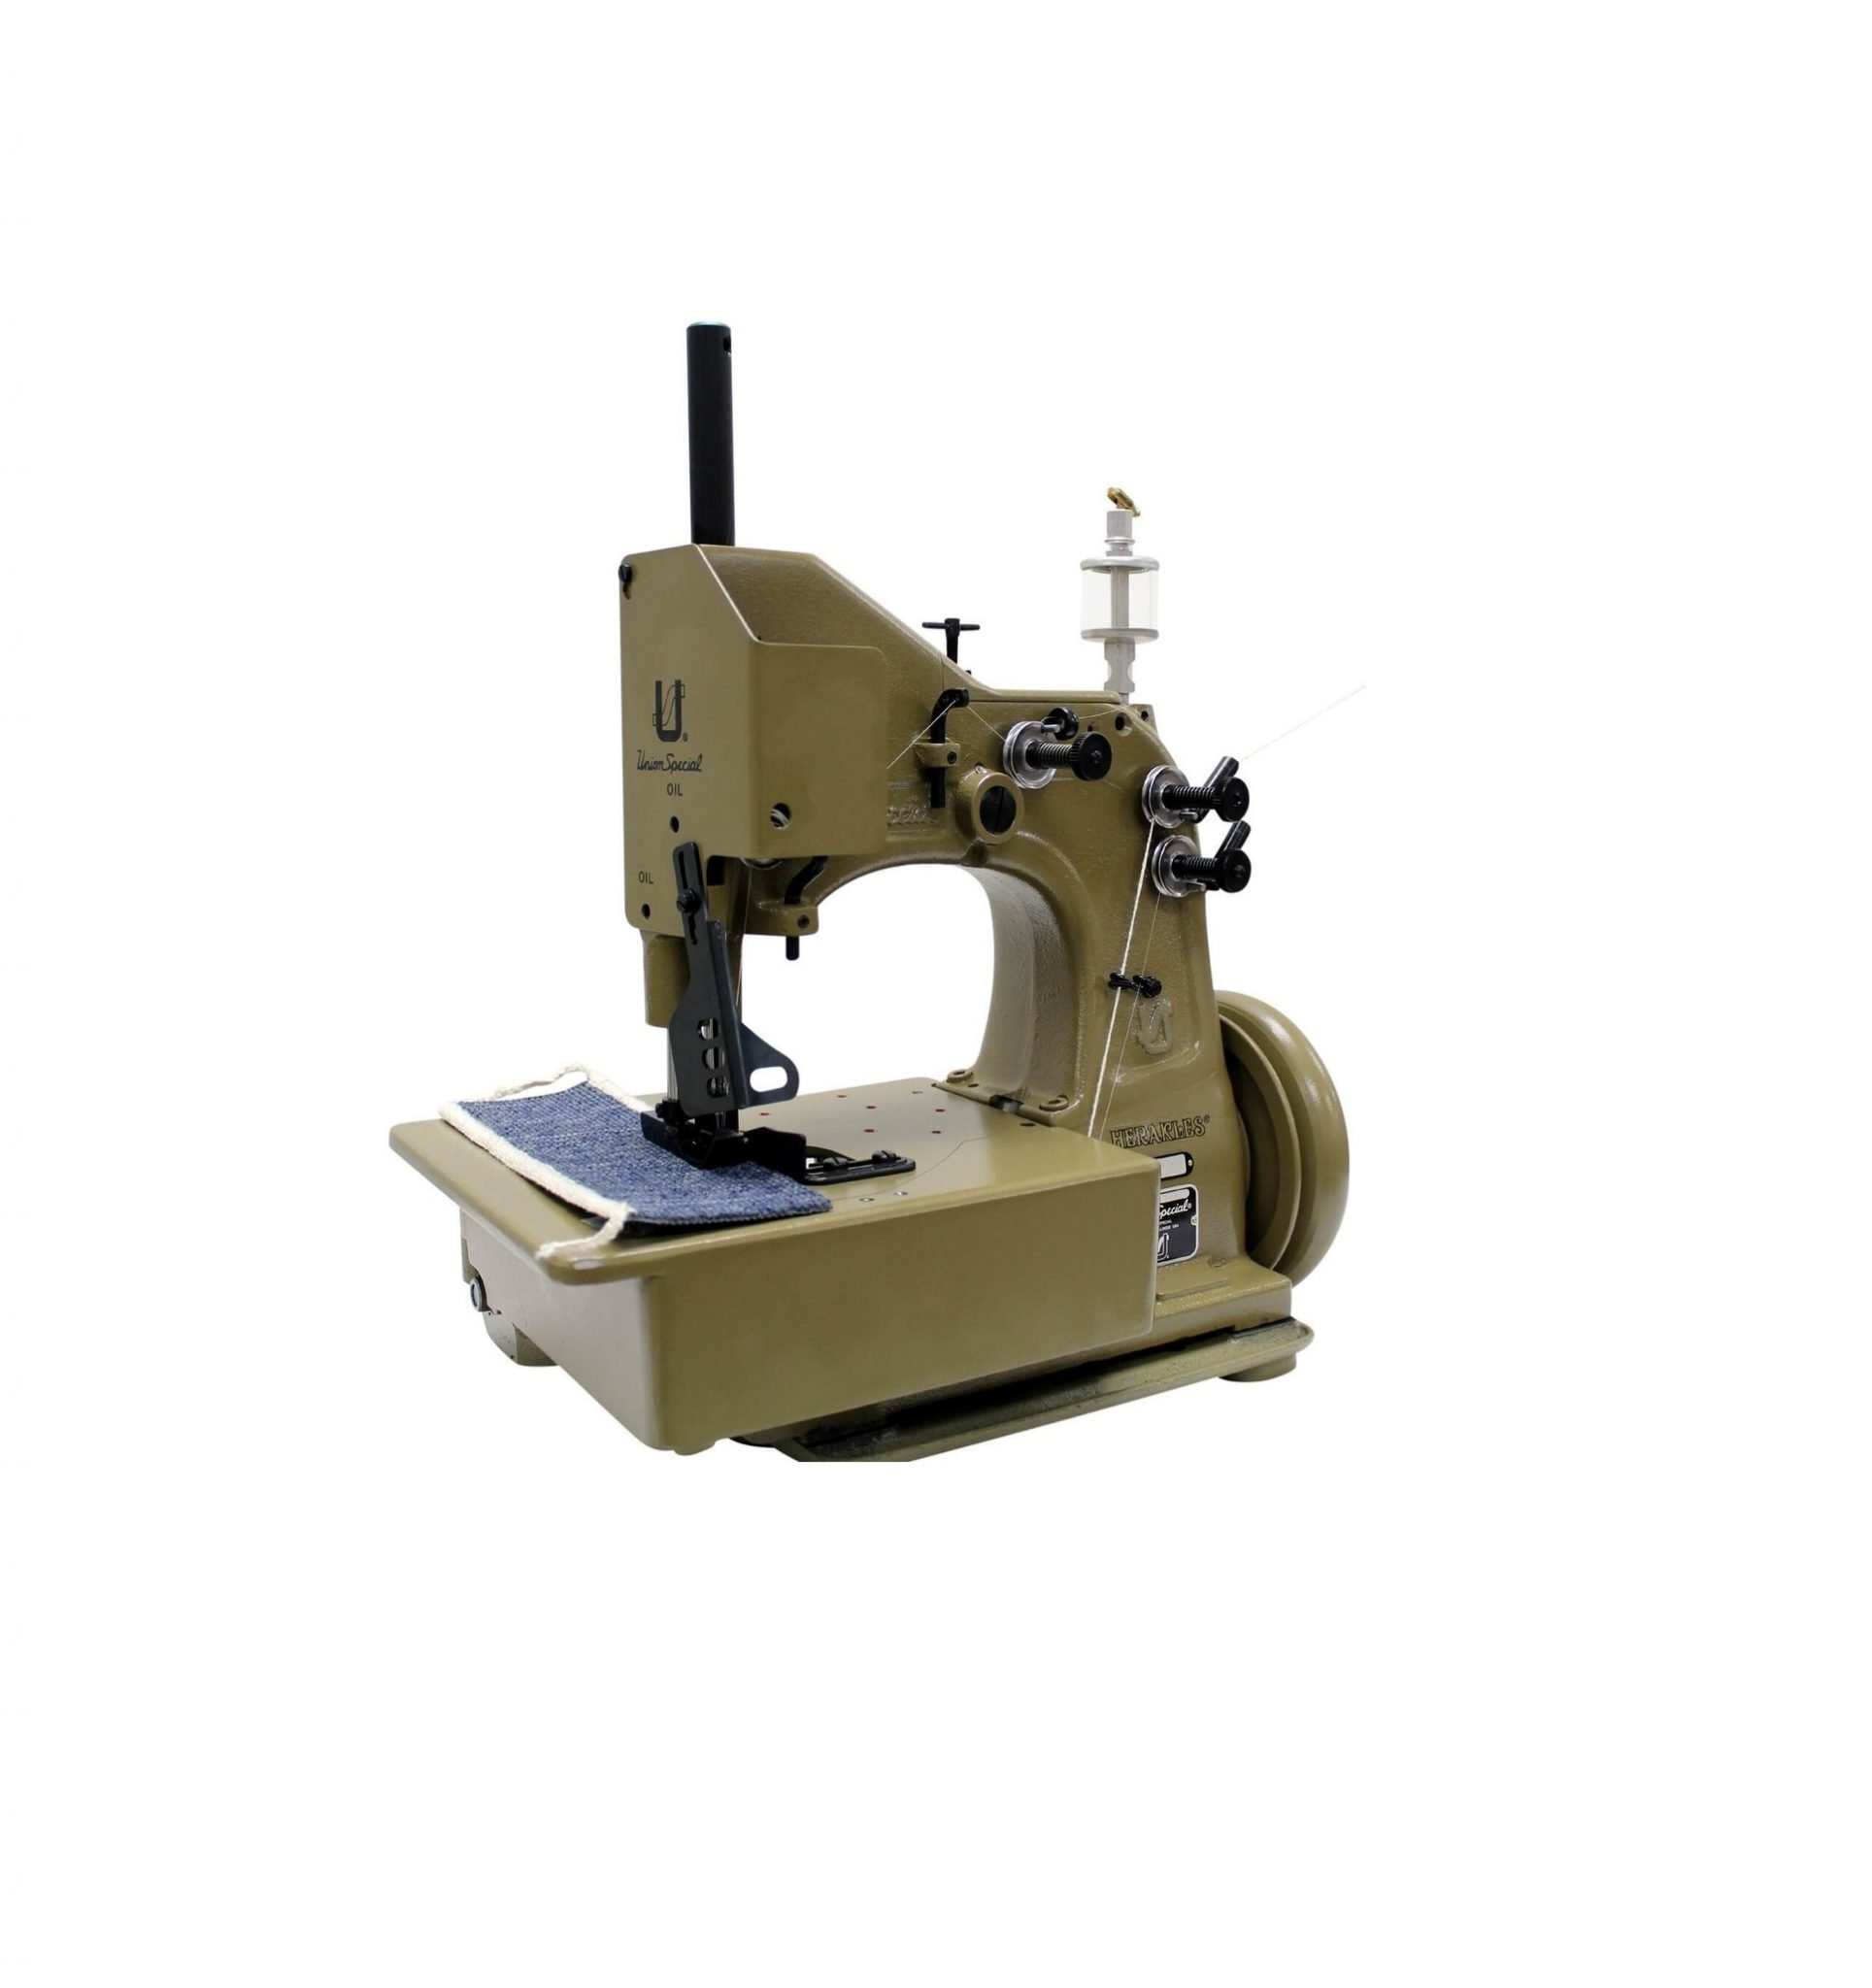 Union Special 81200 Series Industrial Carpet Overlock Commercial